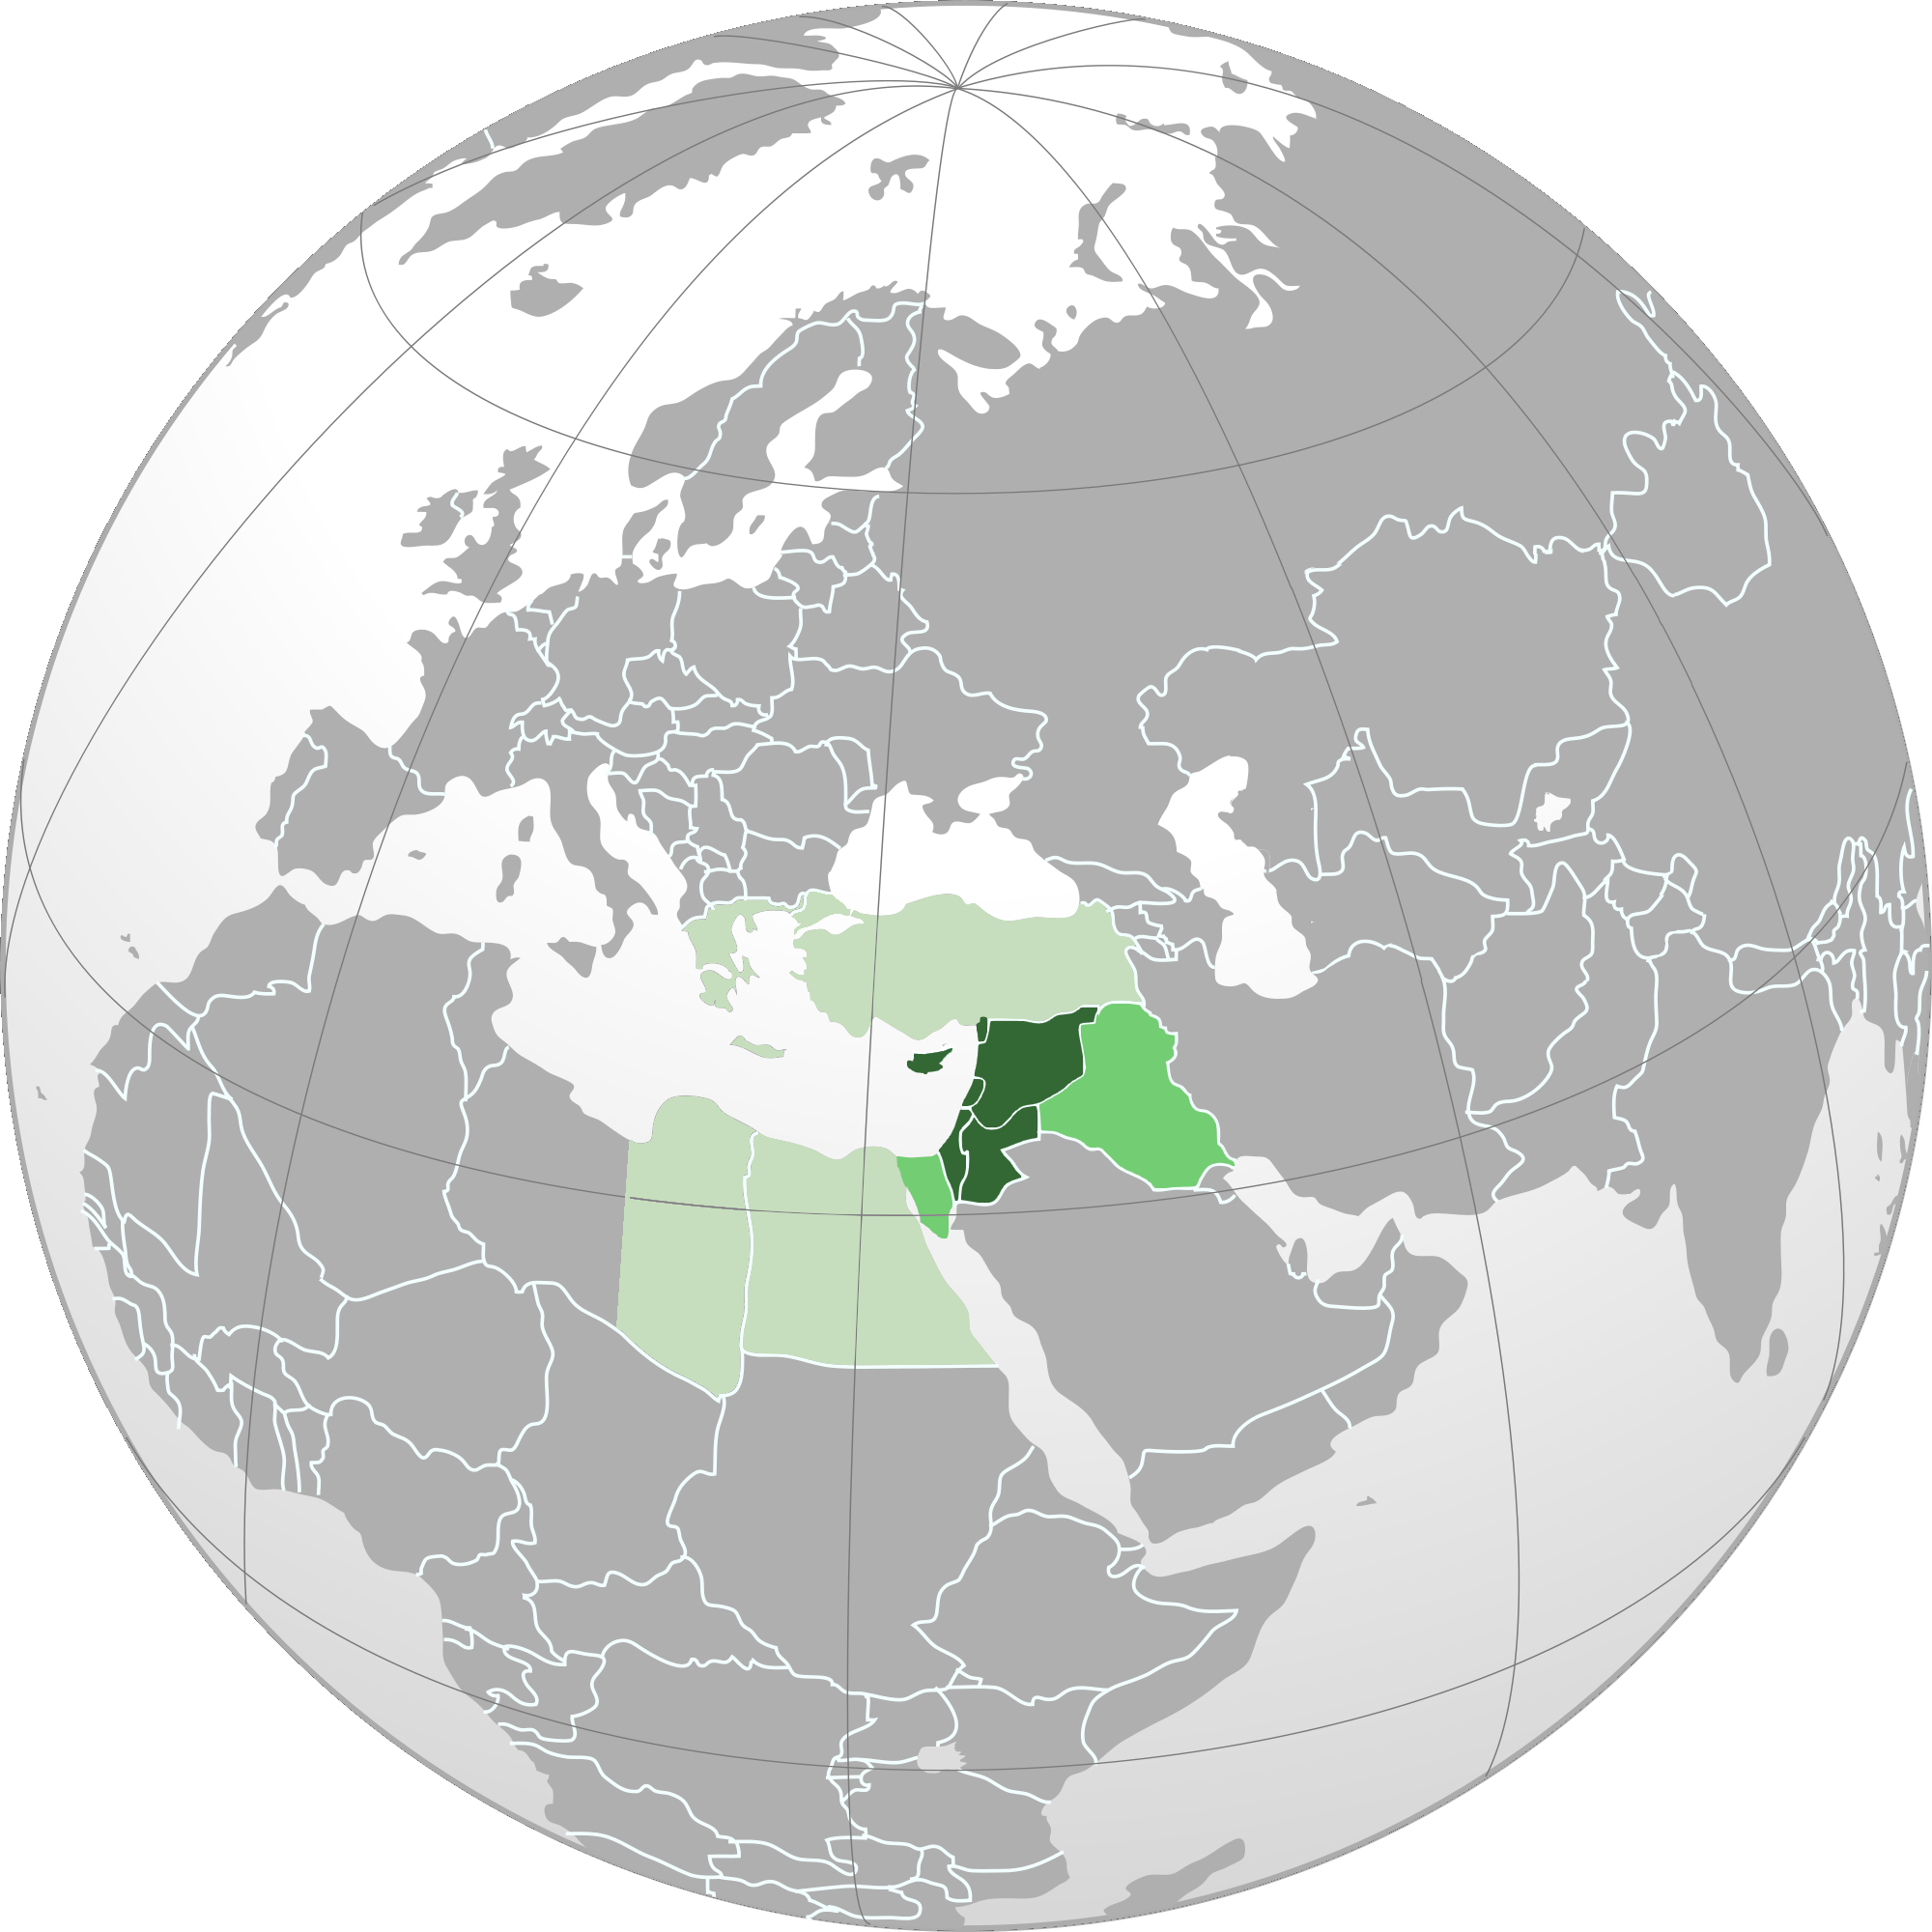 Levant - Wikipedia on mesopotamia map, israel map, syria map, mediterranean map, maghreb map, north africa map, iraq map, west bank map, ancient near east map, dead sea map, sinai peninsula map, egypt map, east asia map, ottoman empire map, palestine map, cyprus map, jordan map, fertile crescent map, canaan map, anatolia map,